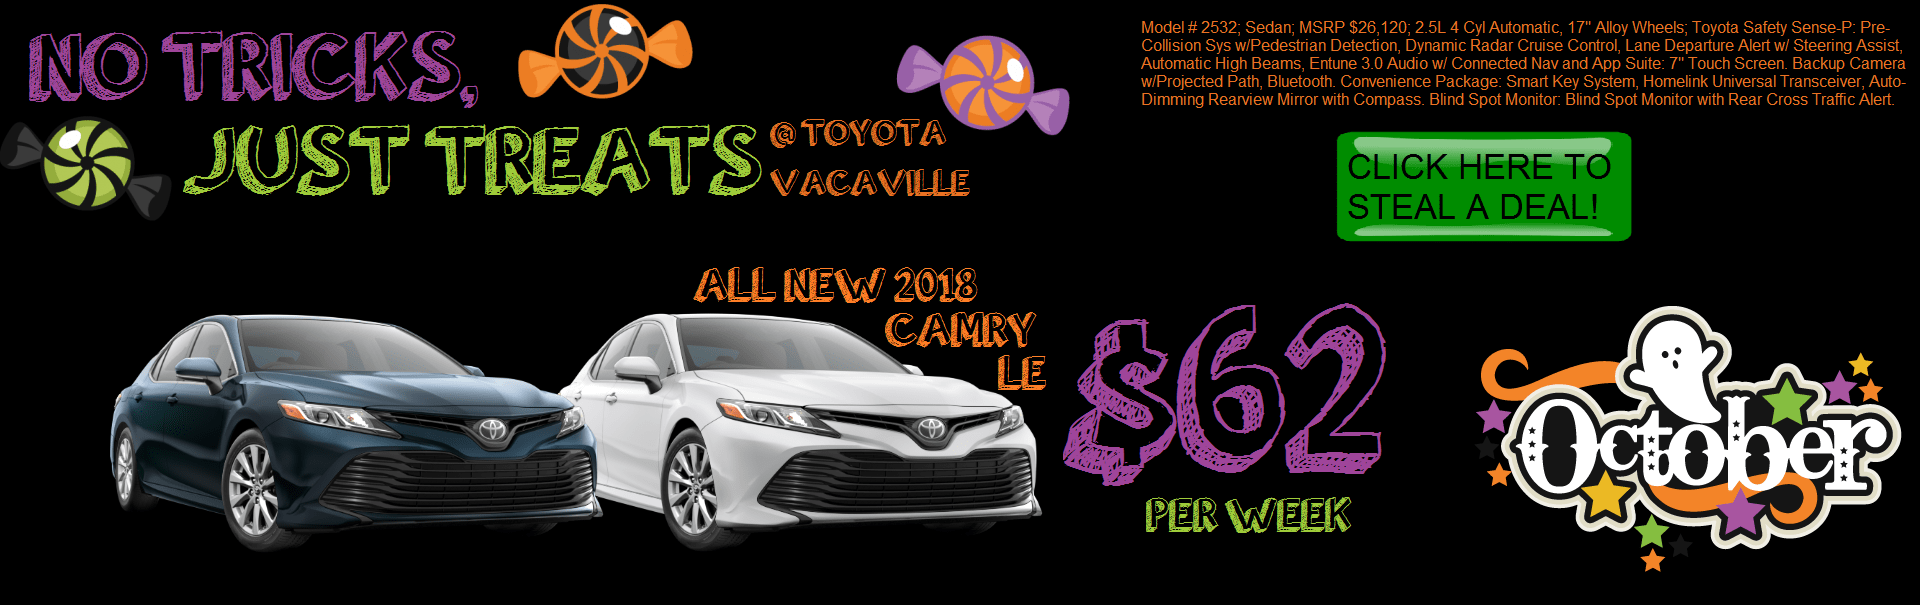 2018 Camry LE at Toyota Vacaville